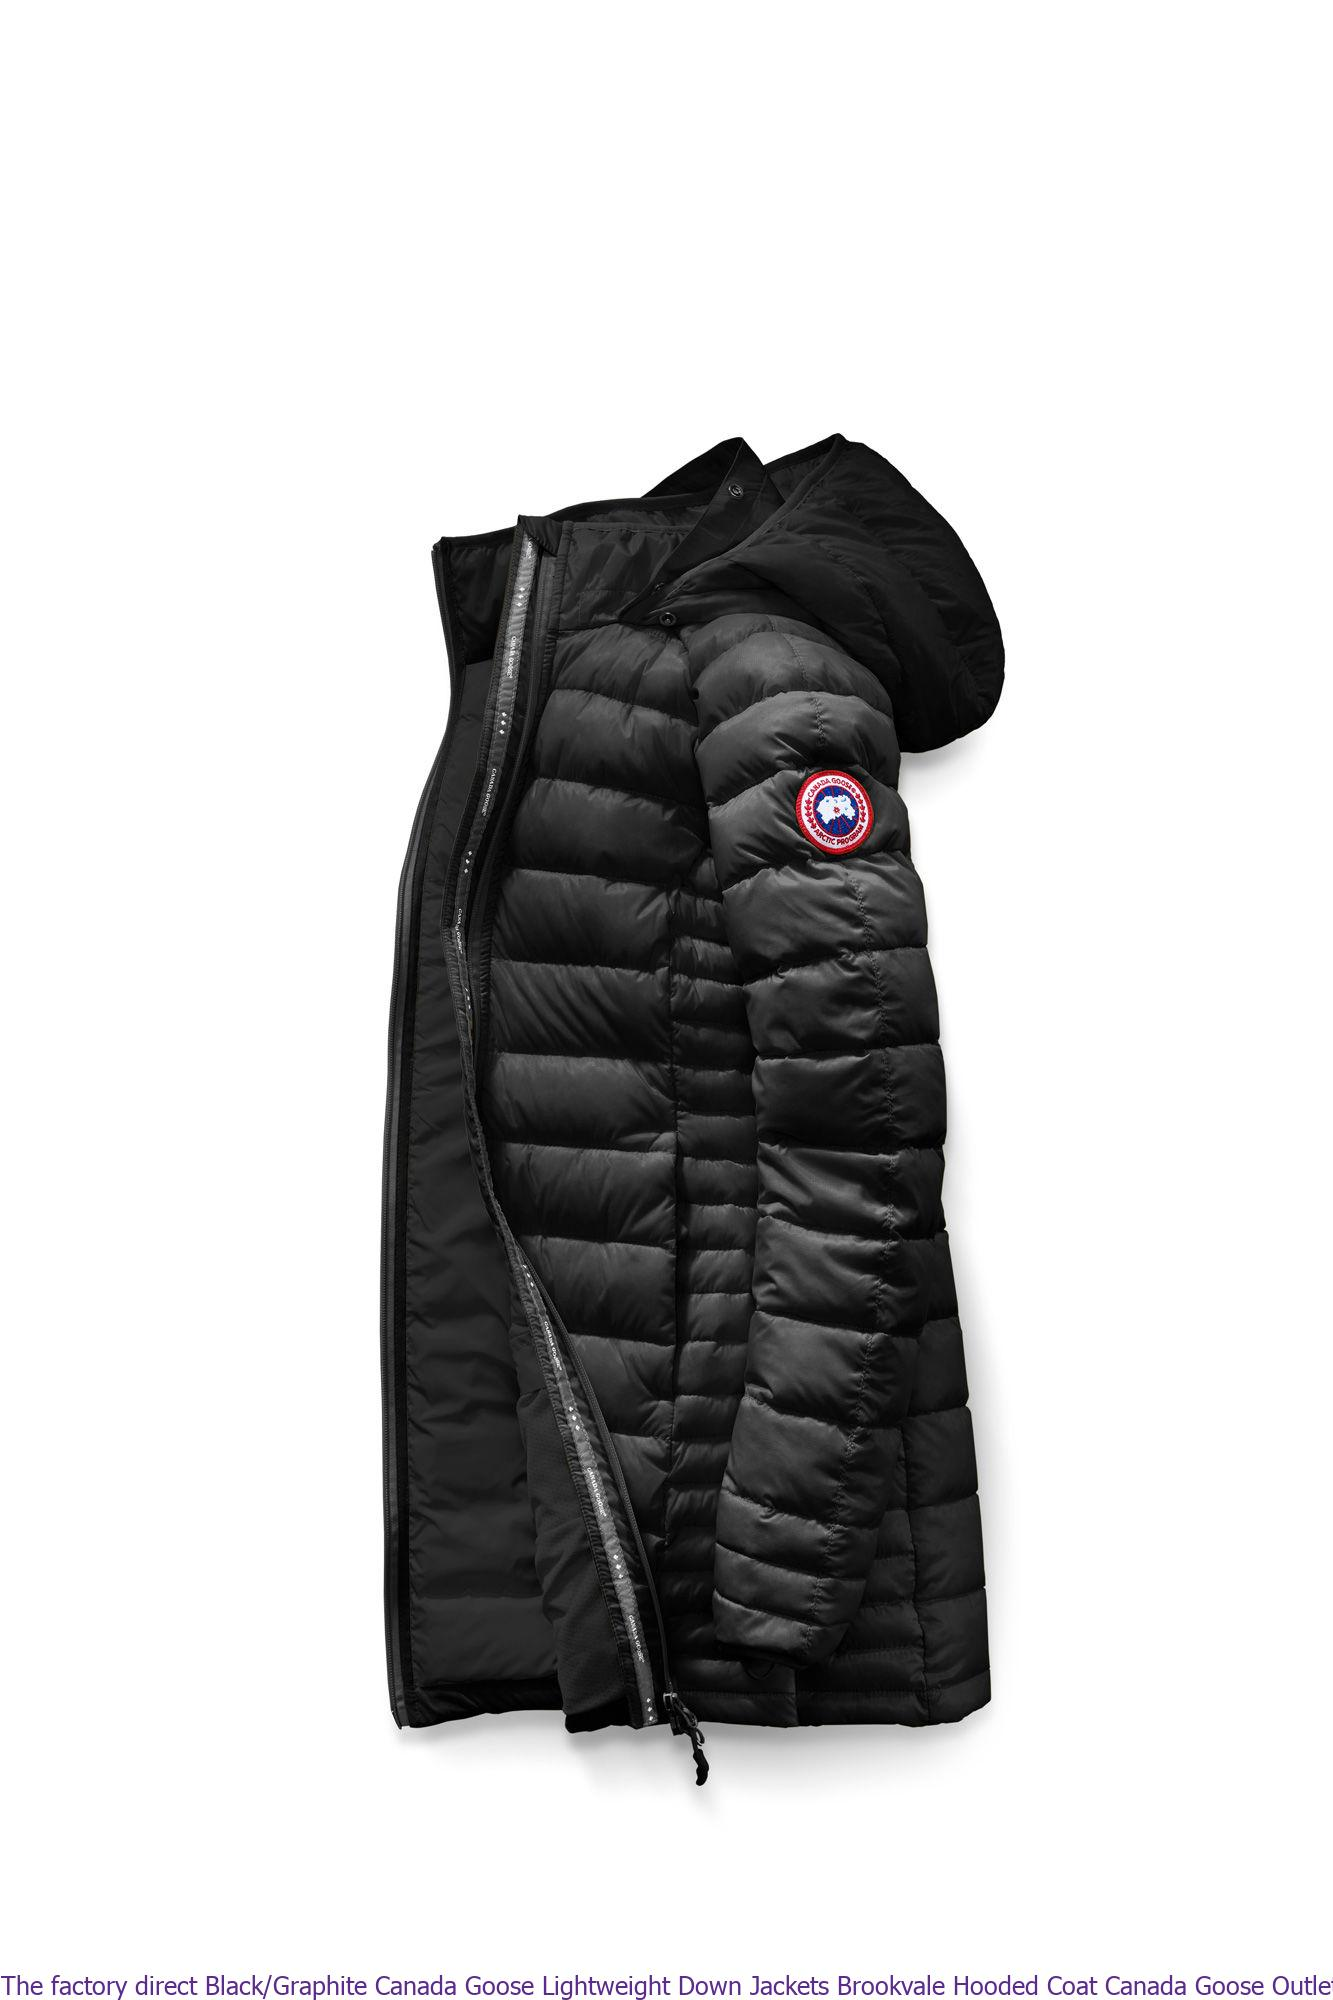 b9f5e8088 The factory direct Black/Graphite Canada Goose Lightweight Down Jackets  Brookvale Hooded Coat Canada Goose Outlet Phone Number 5502L